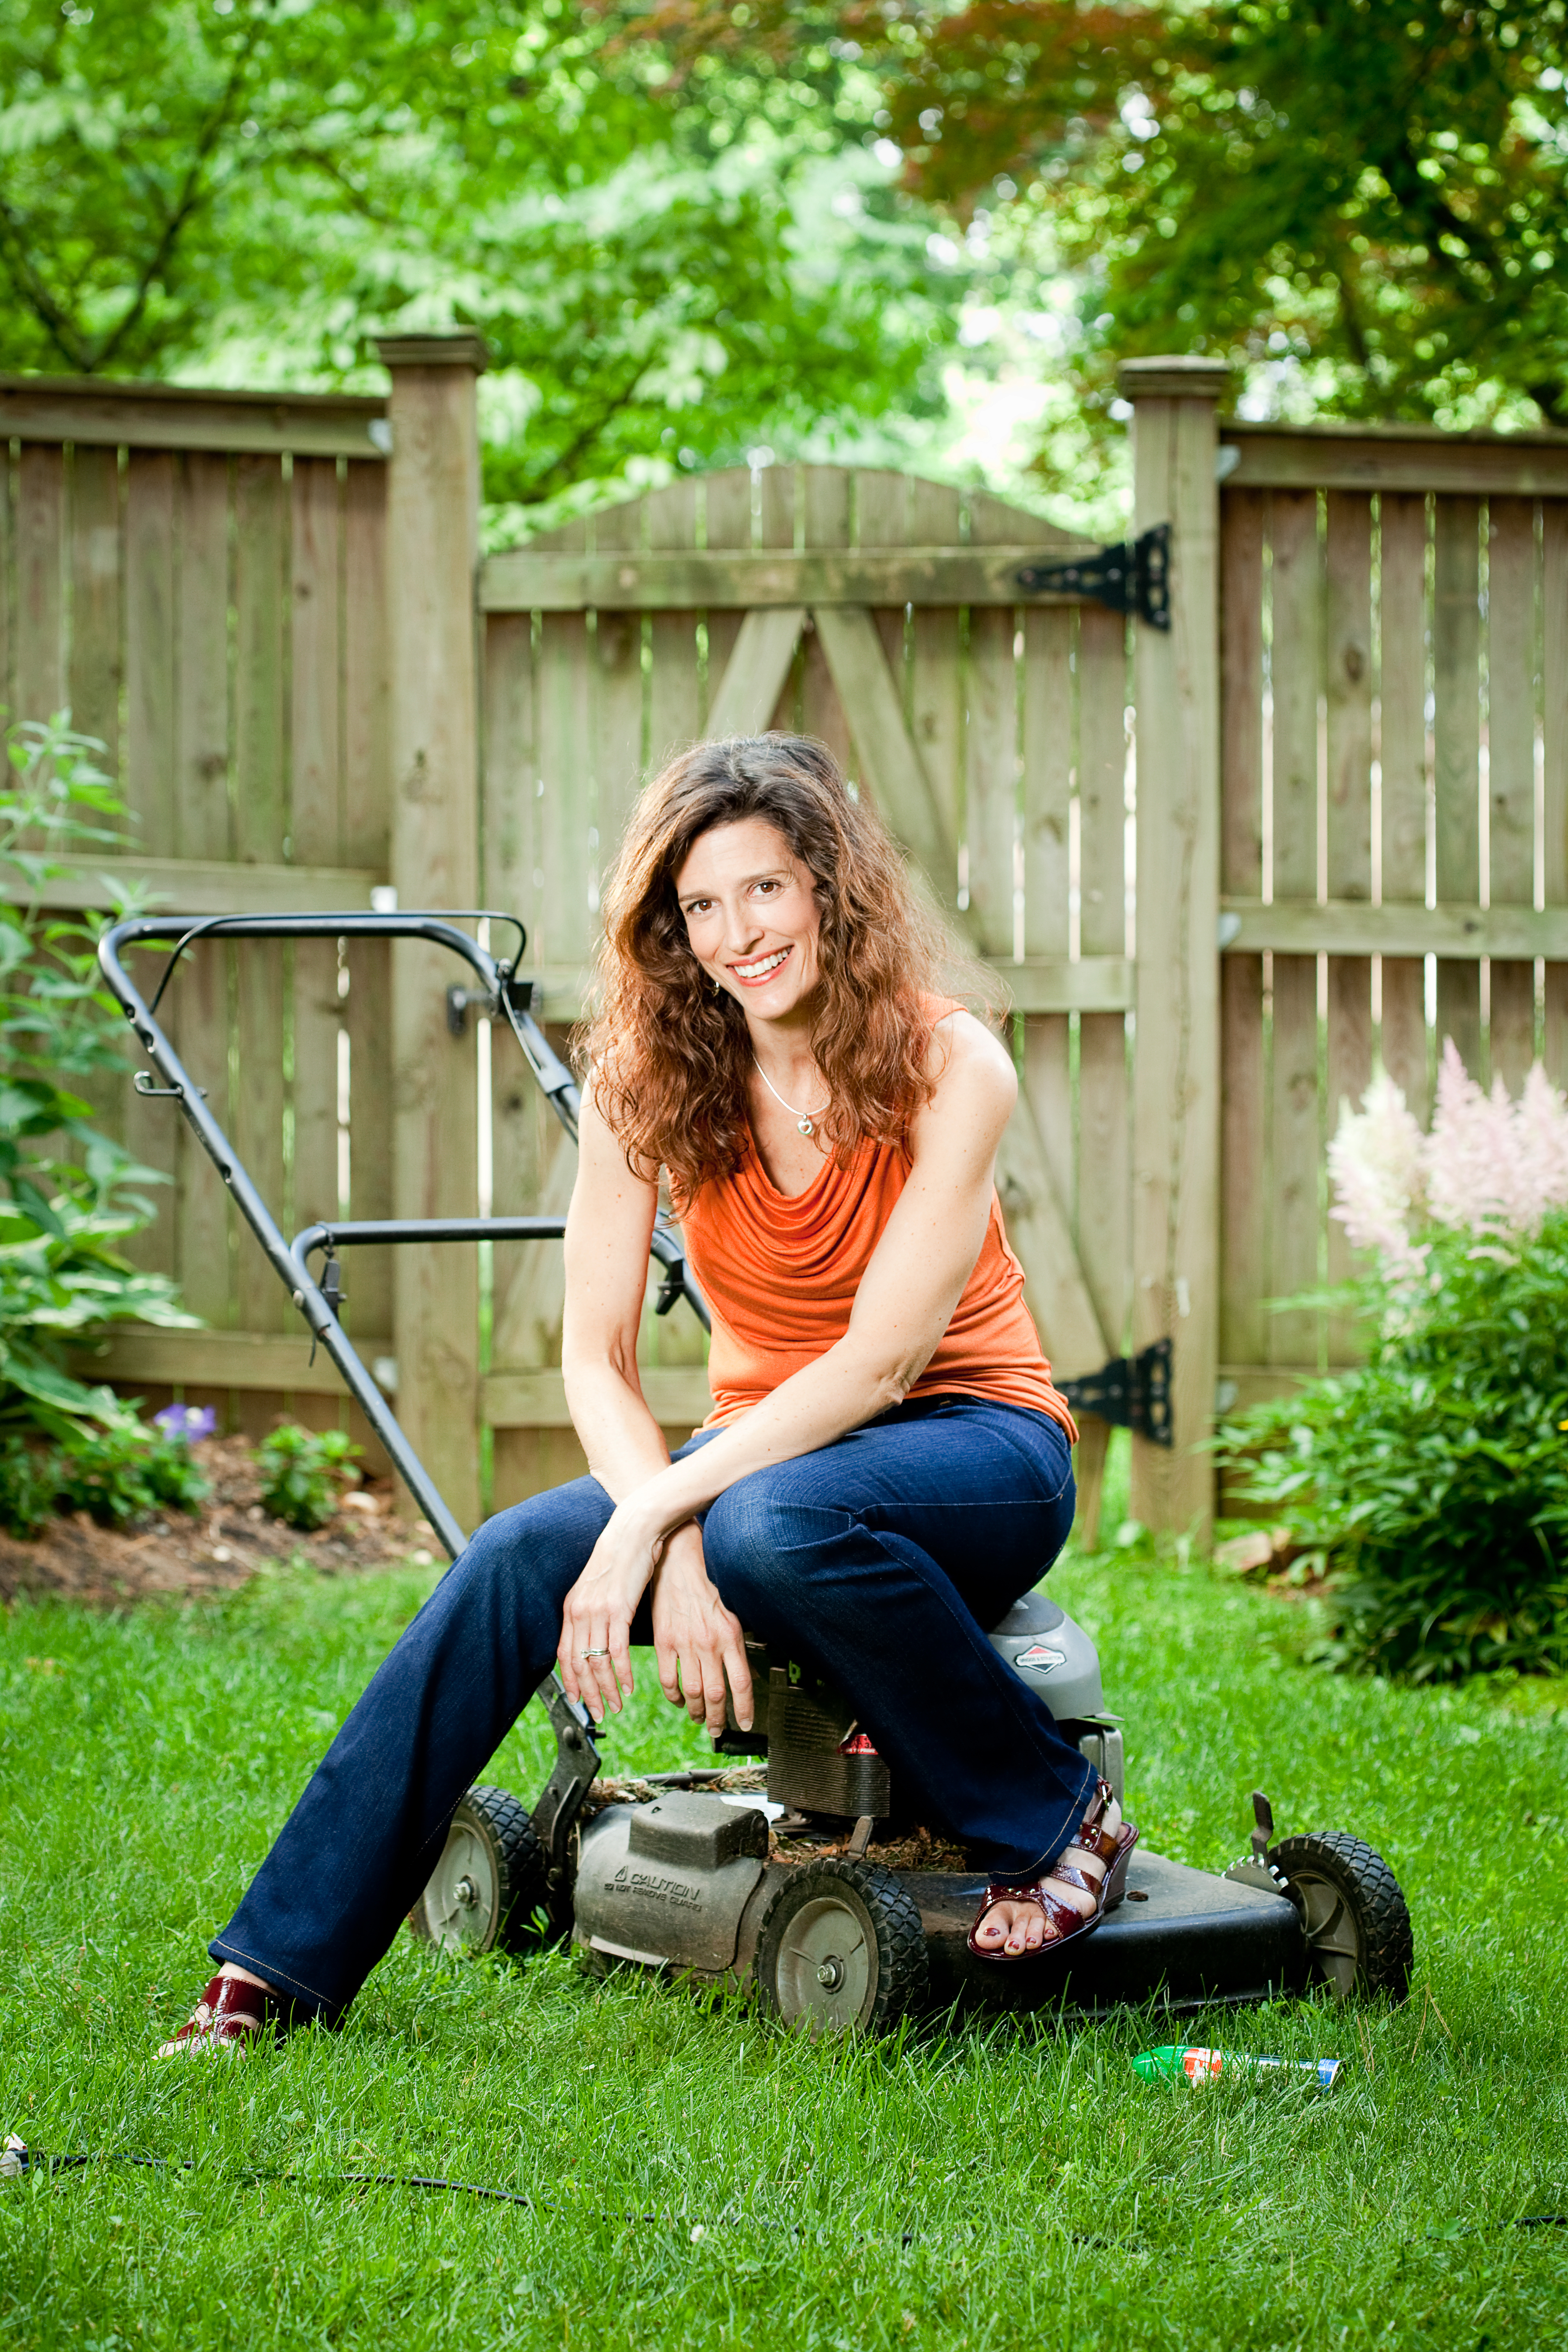 Portrait - Woman on a Lawnmower